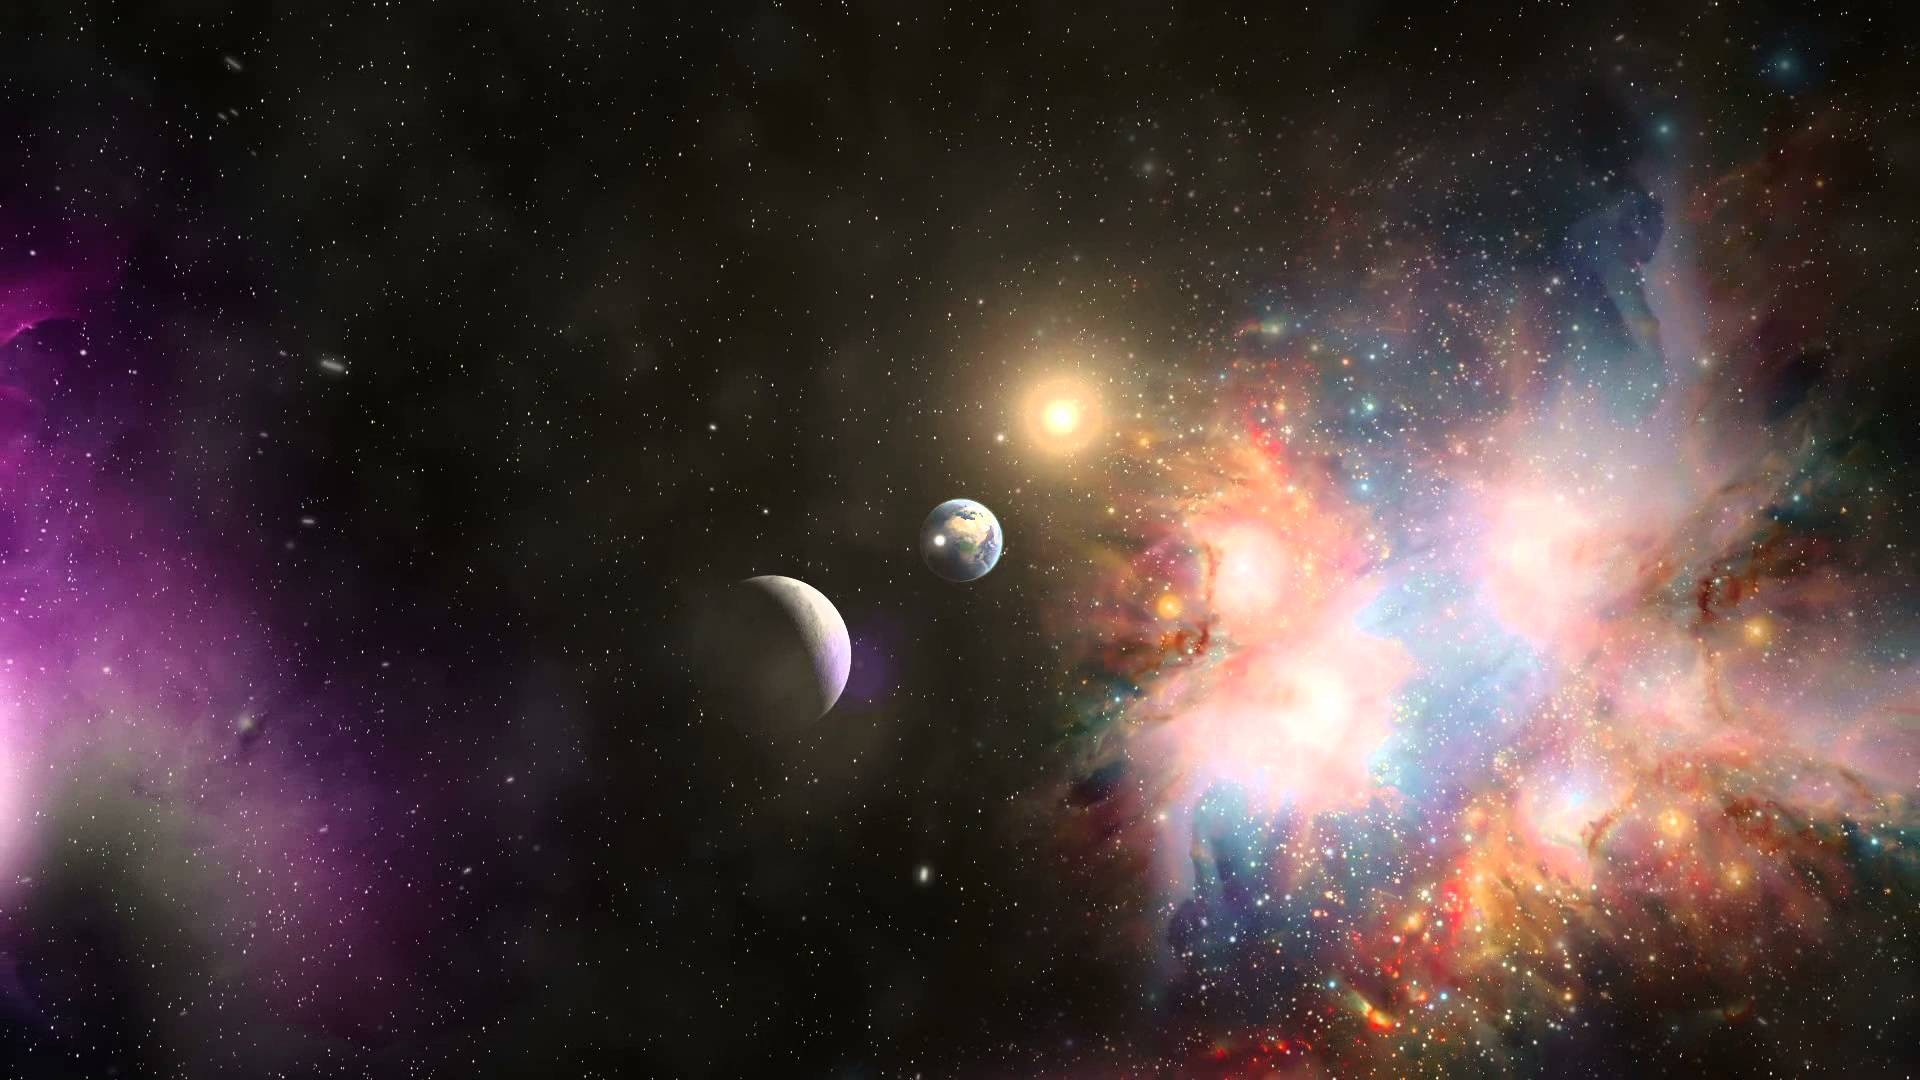 Ipad Space Wallpaper: Space Background ·① Download Free Stunning Wallpapers For